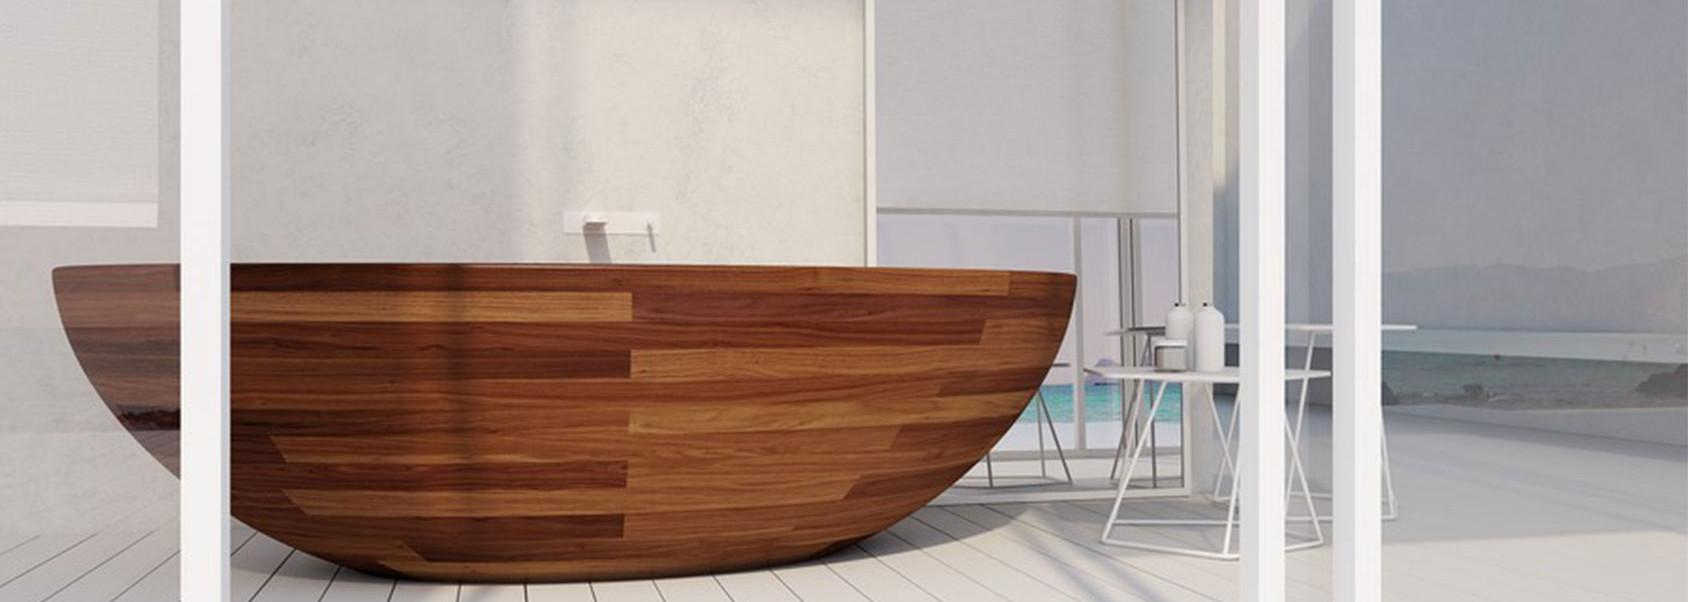 Stunning Freestanding Double Slippers Wooden Bathtub